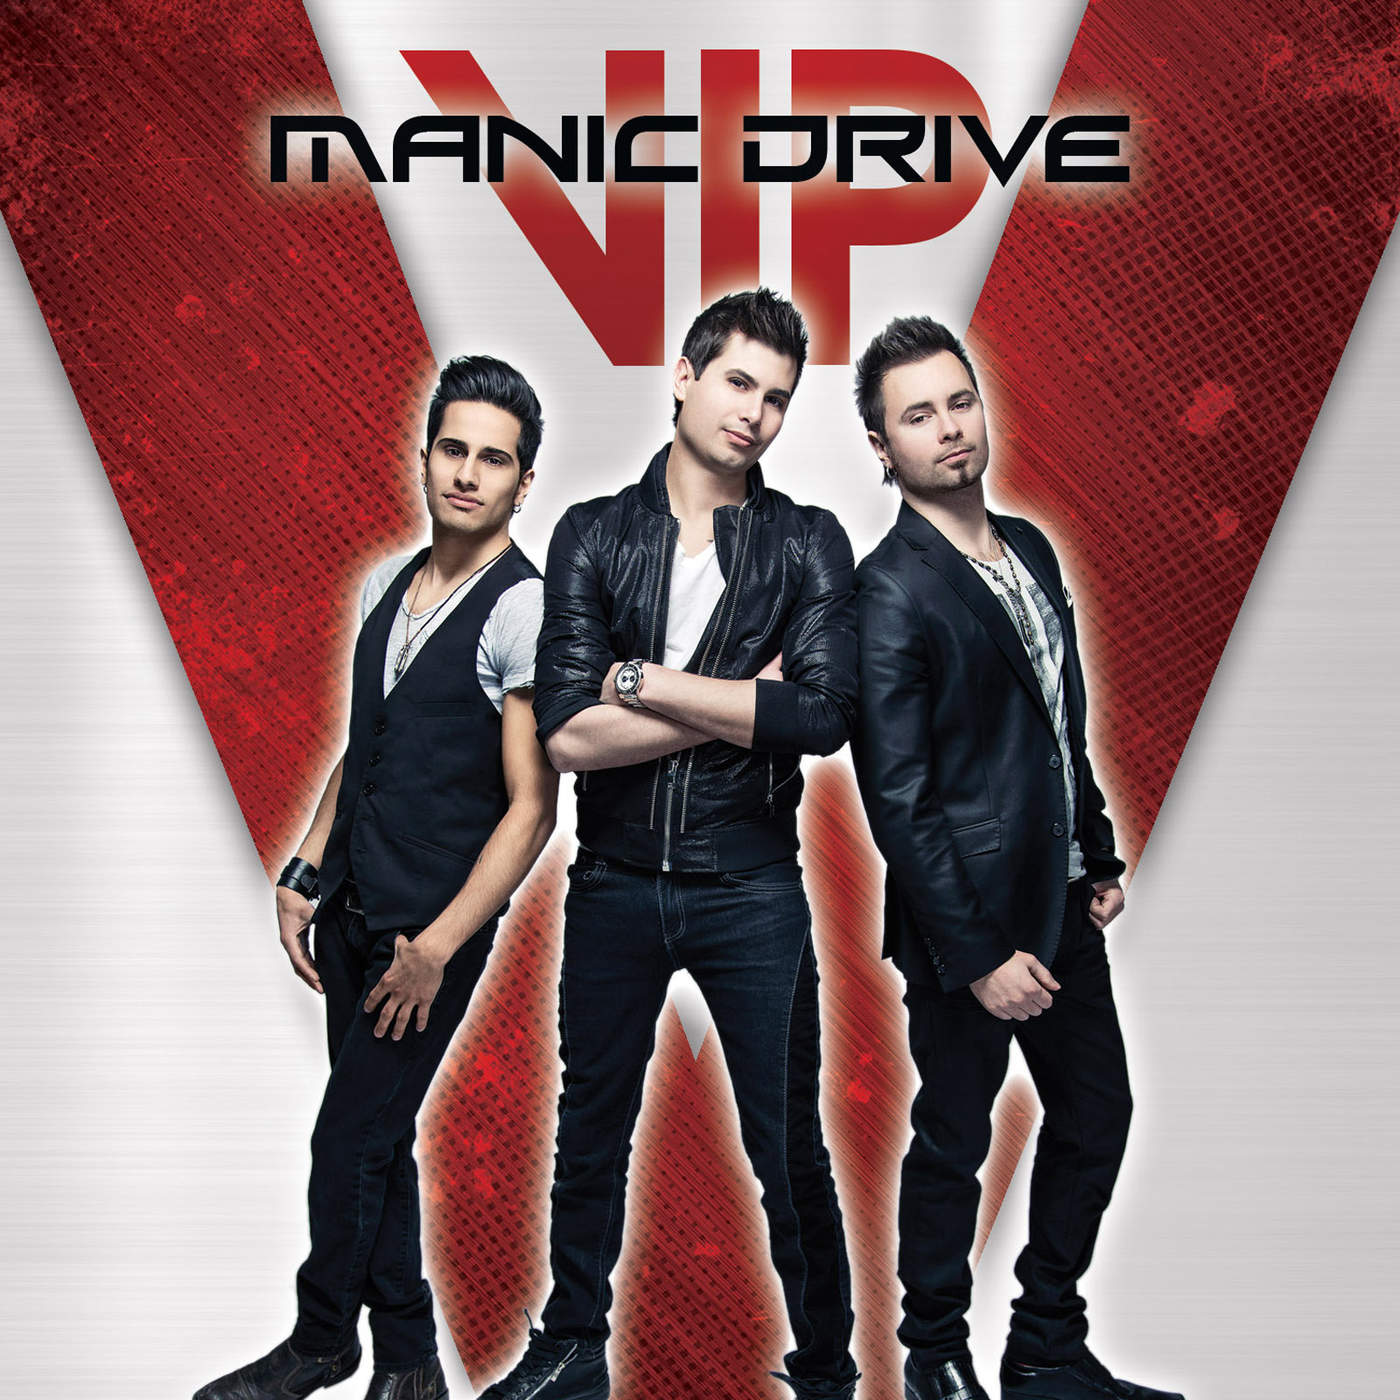 Art for Good News by Manic Drive